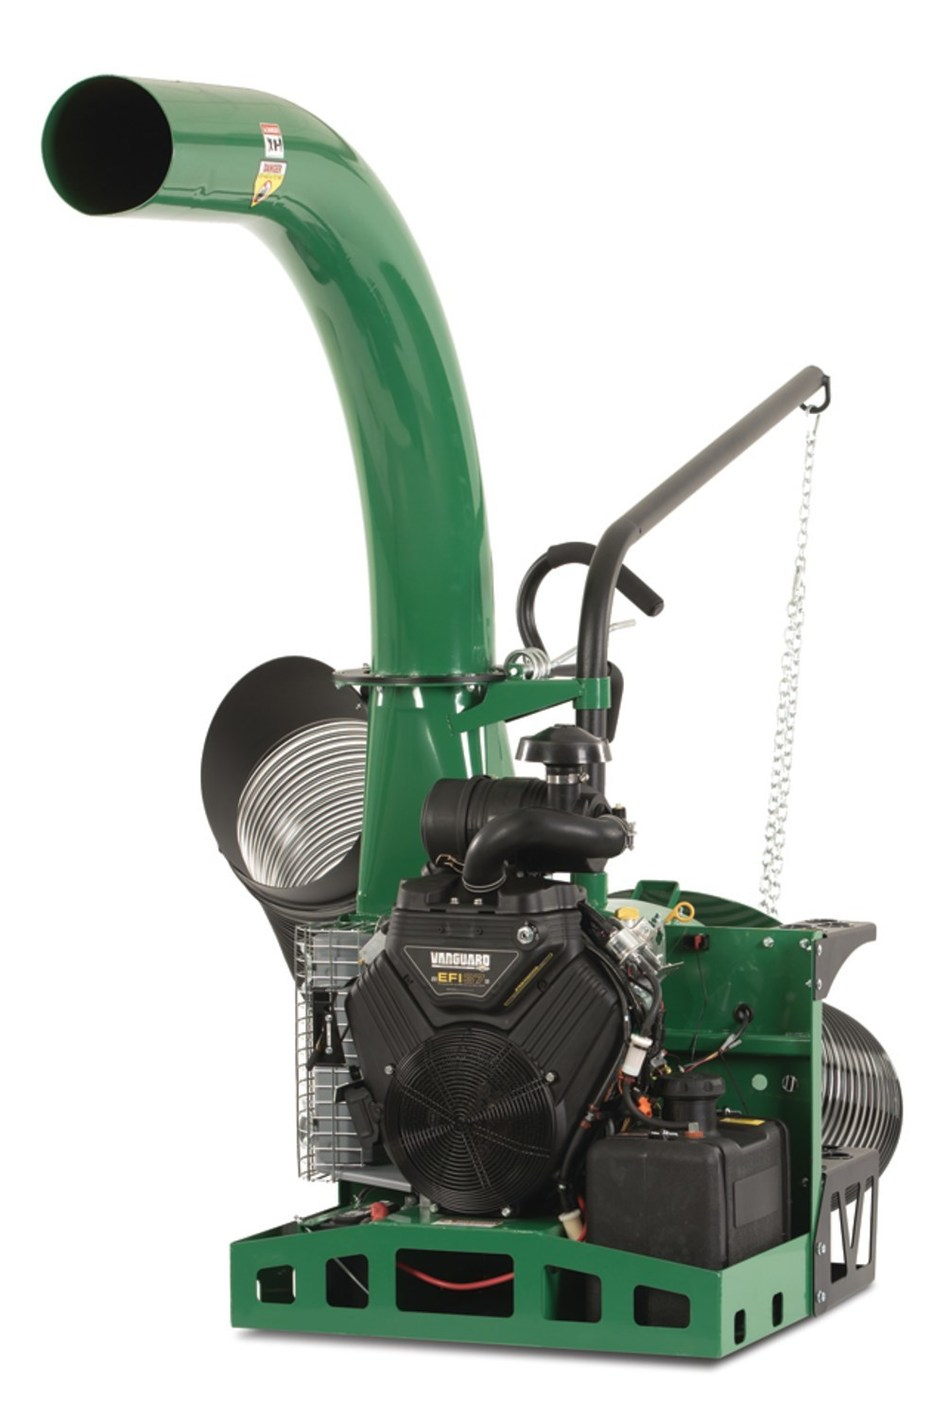 The New 37 Gross HP* Debris Loader From Billy Goat Features